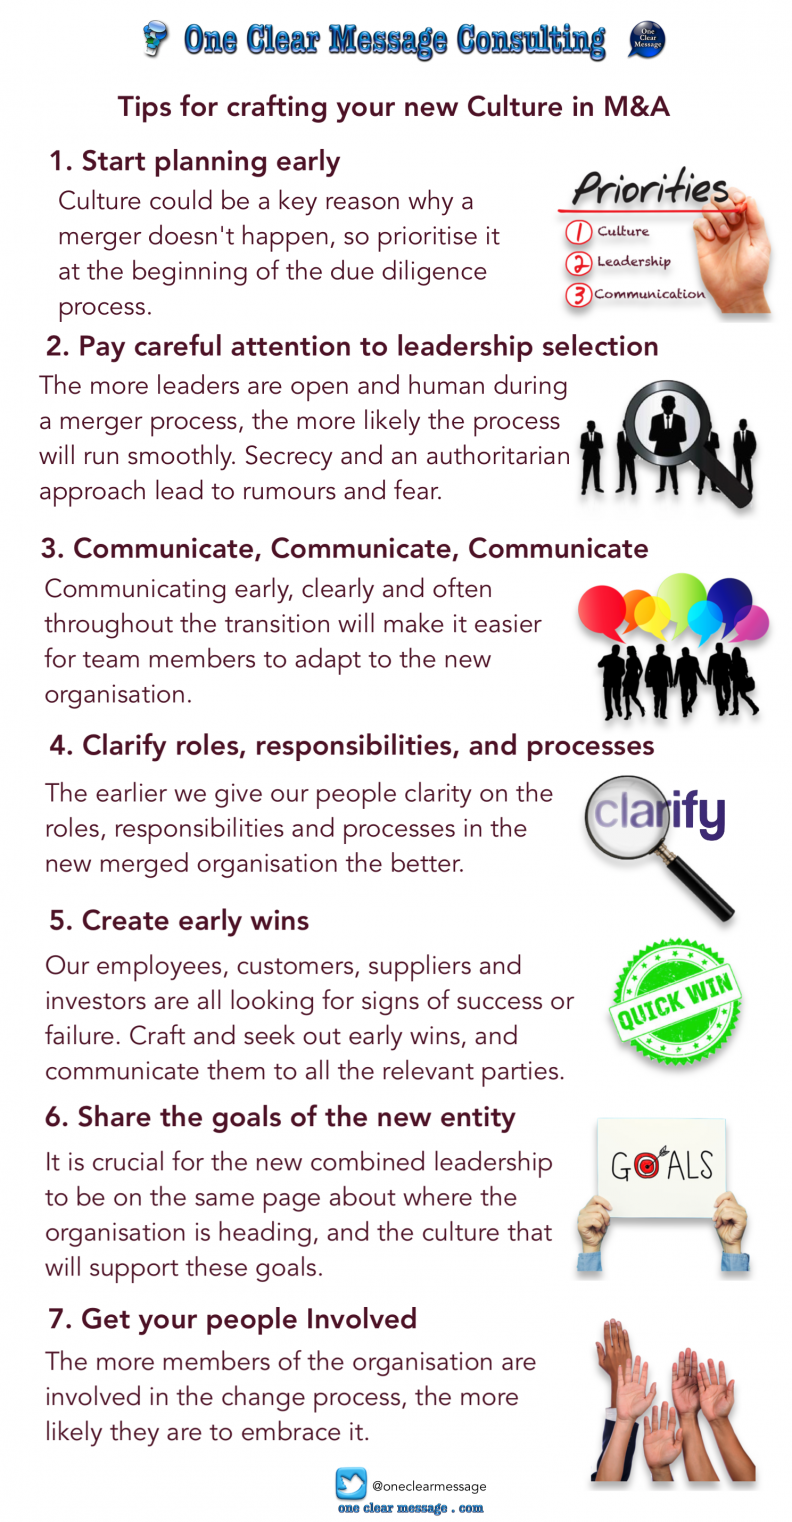 Tips for crafting your new Culture in Mergers and Acquisitions (M&A) #Infographic